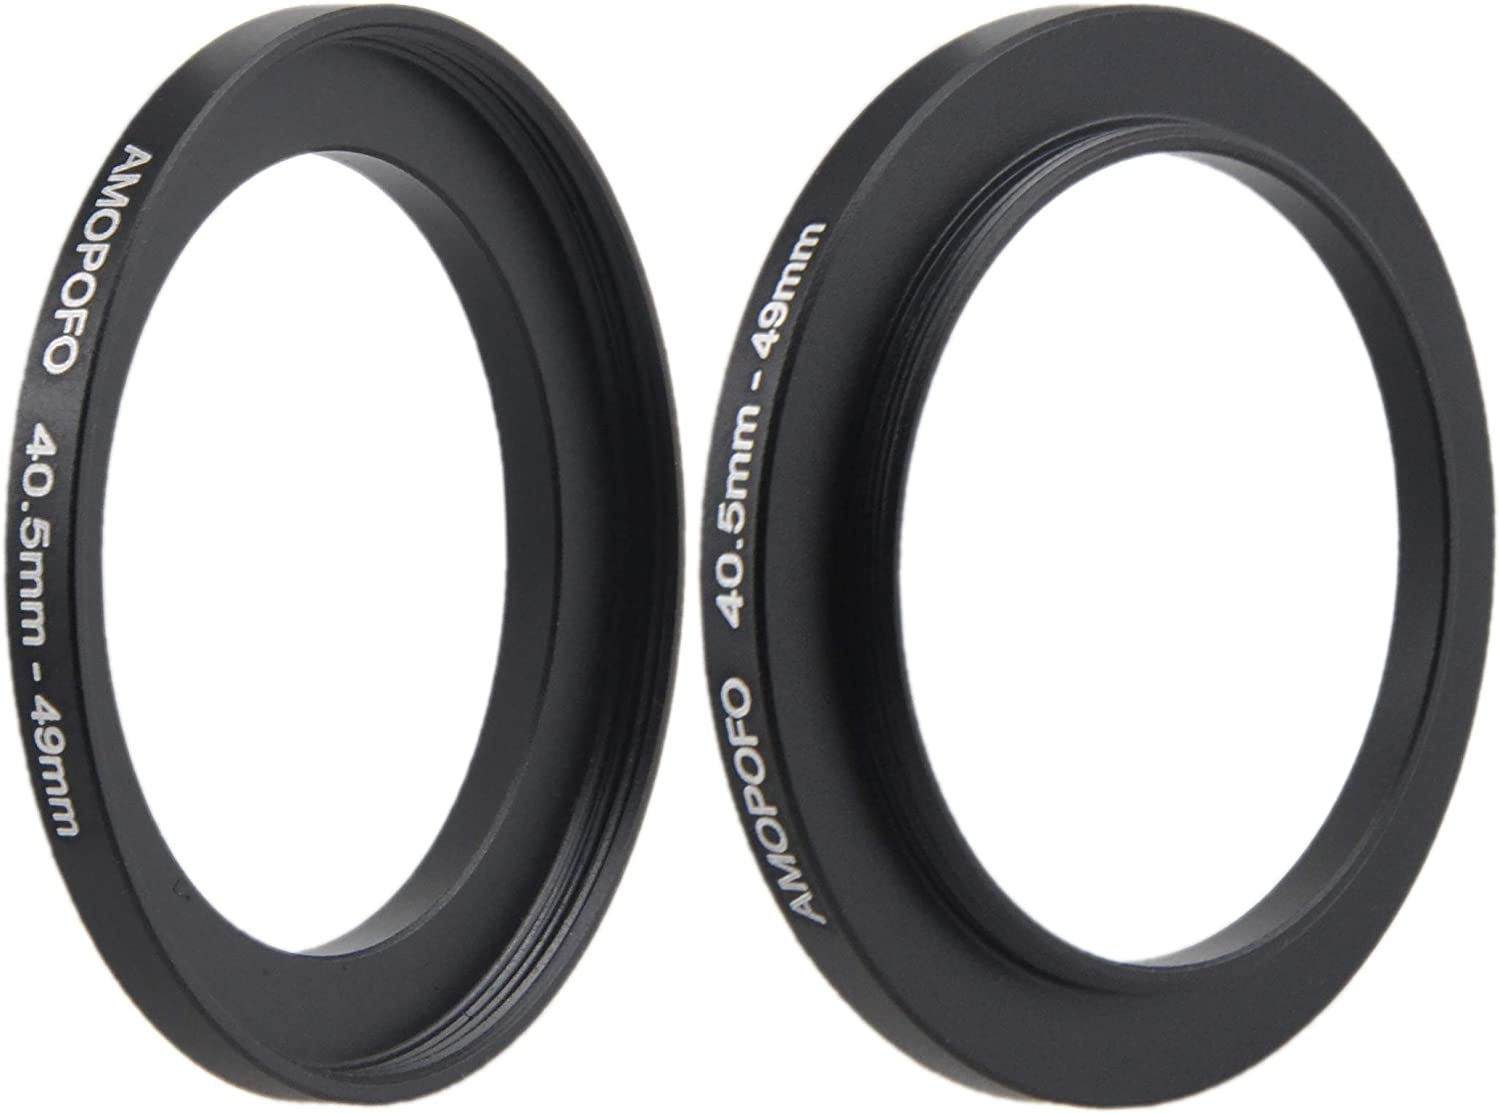 40.5mm to 82mm //40.5mm to 82mm Step Up Ring Filter Adapter for Canon//for Nikon and for Sony UV,ND,CPL,Metal Step Up Ring Adapter